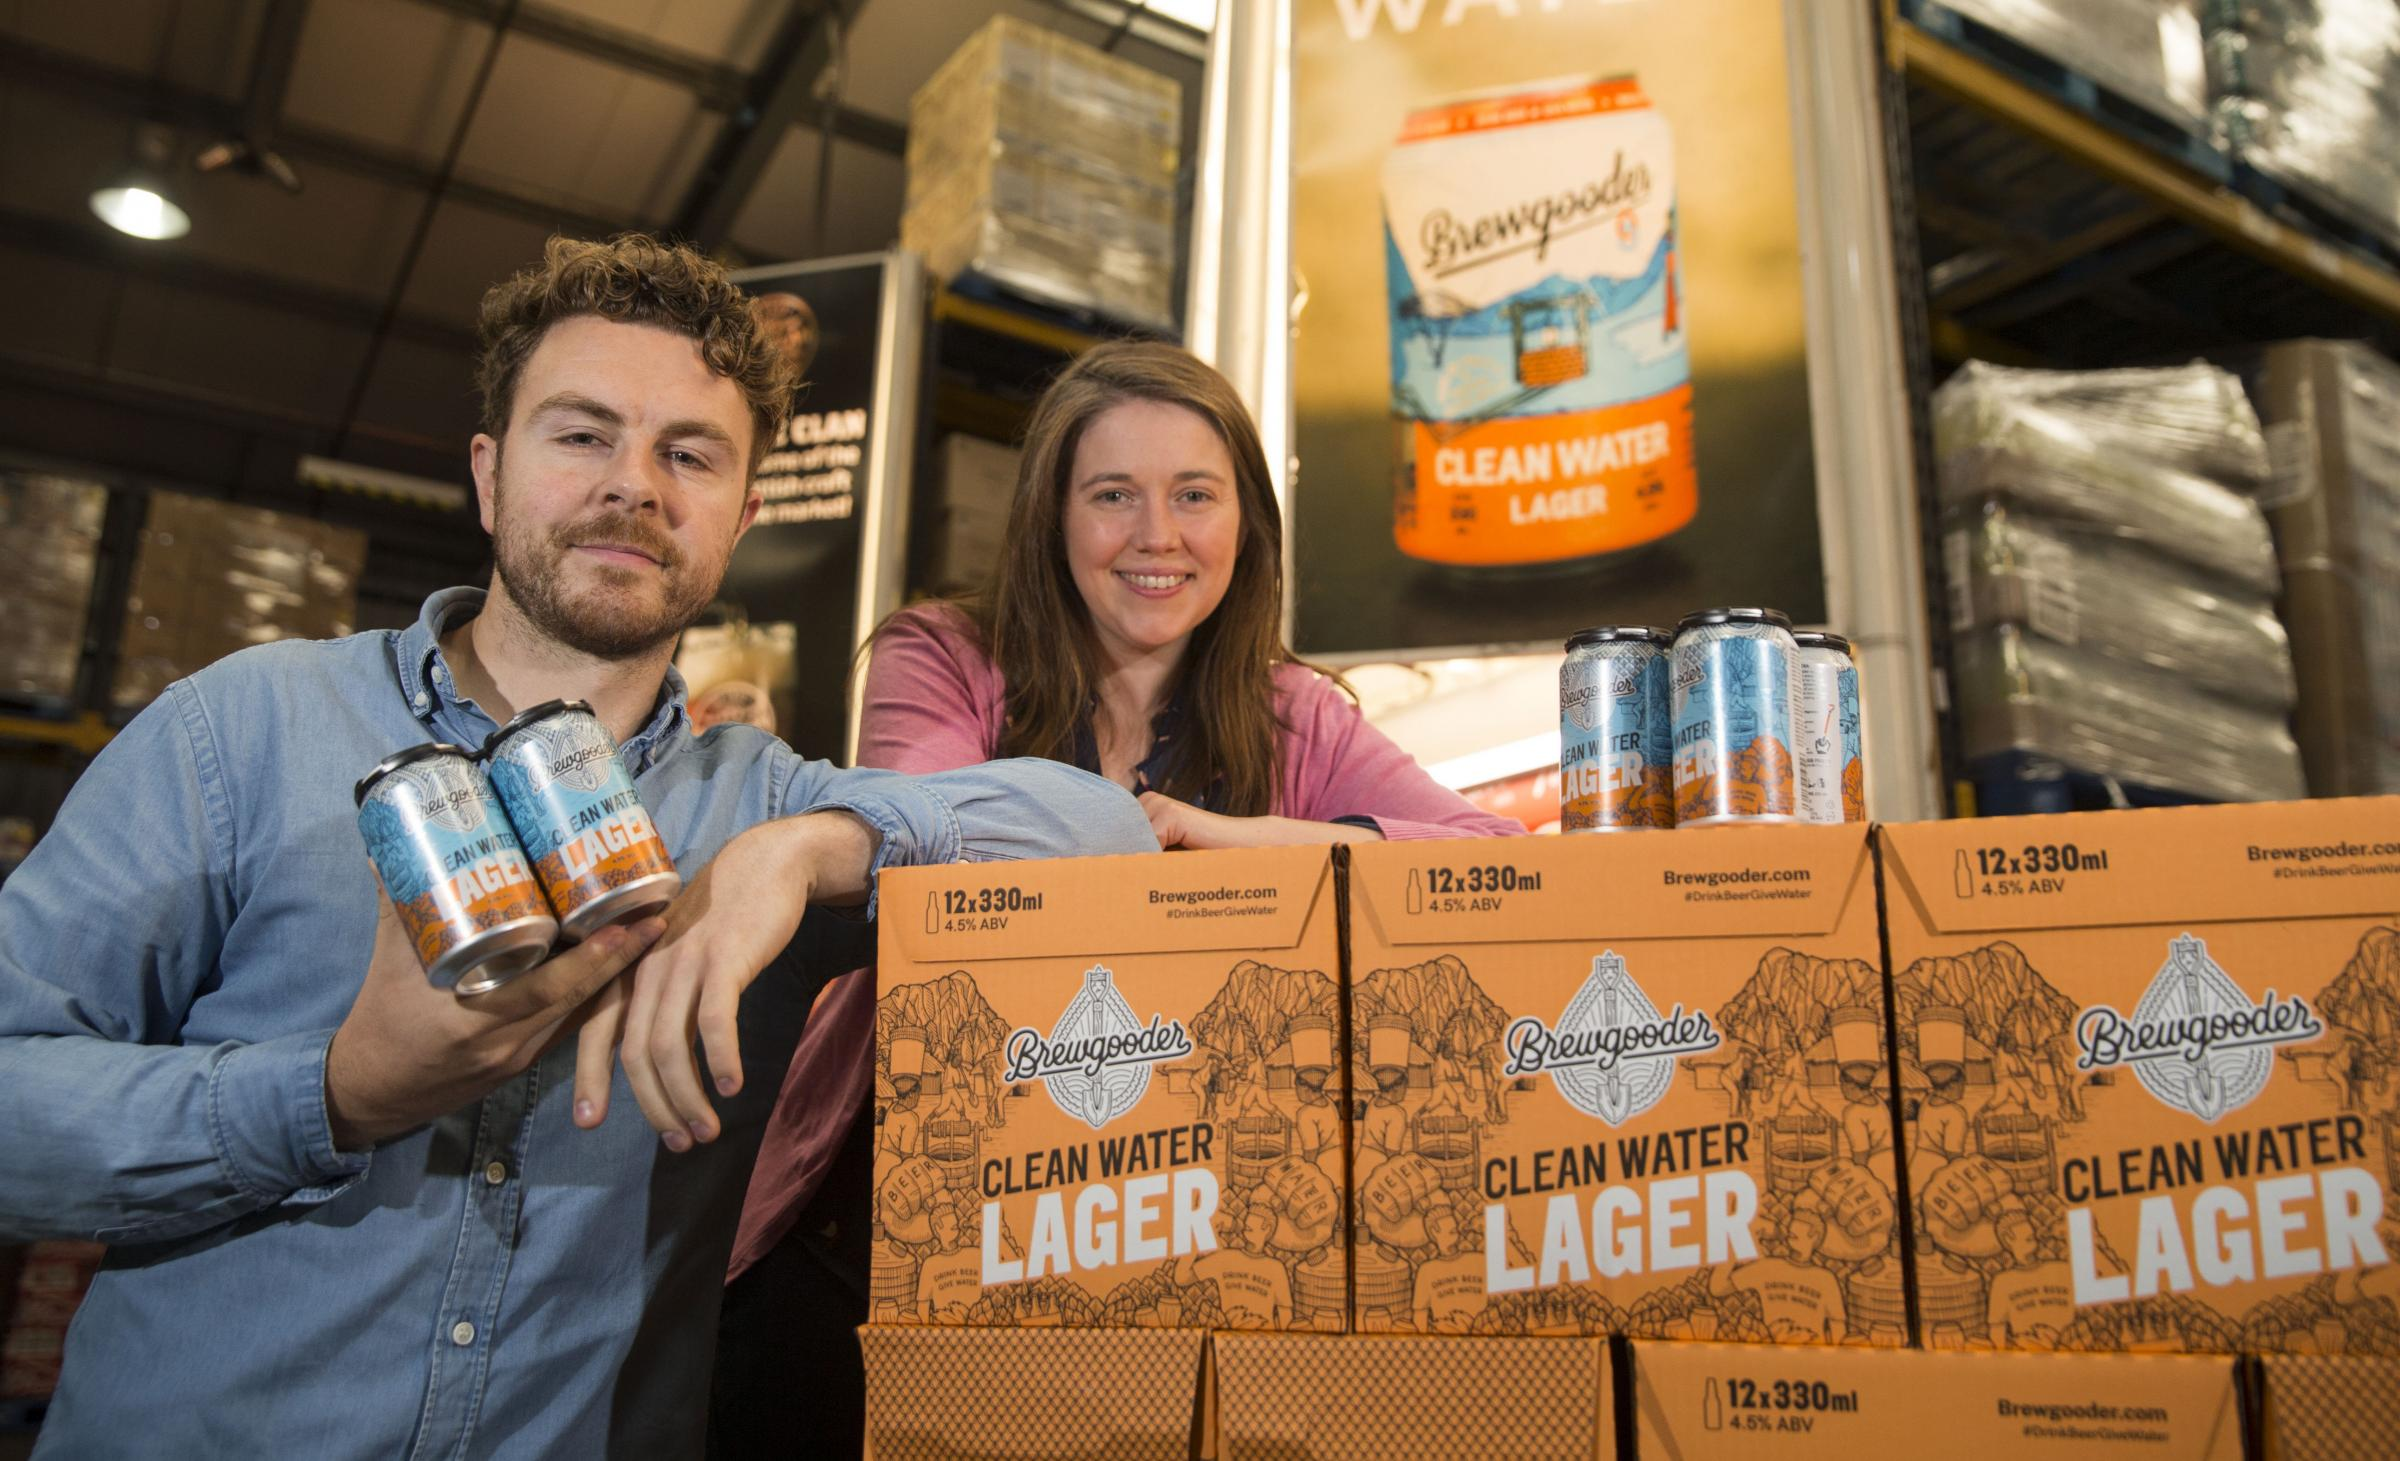 Communities Secretary Aileen Campbell announced the investment while meeting Brewgooder's Alan Mahon